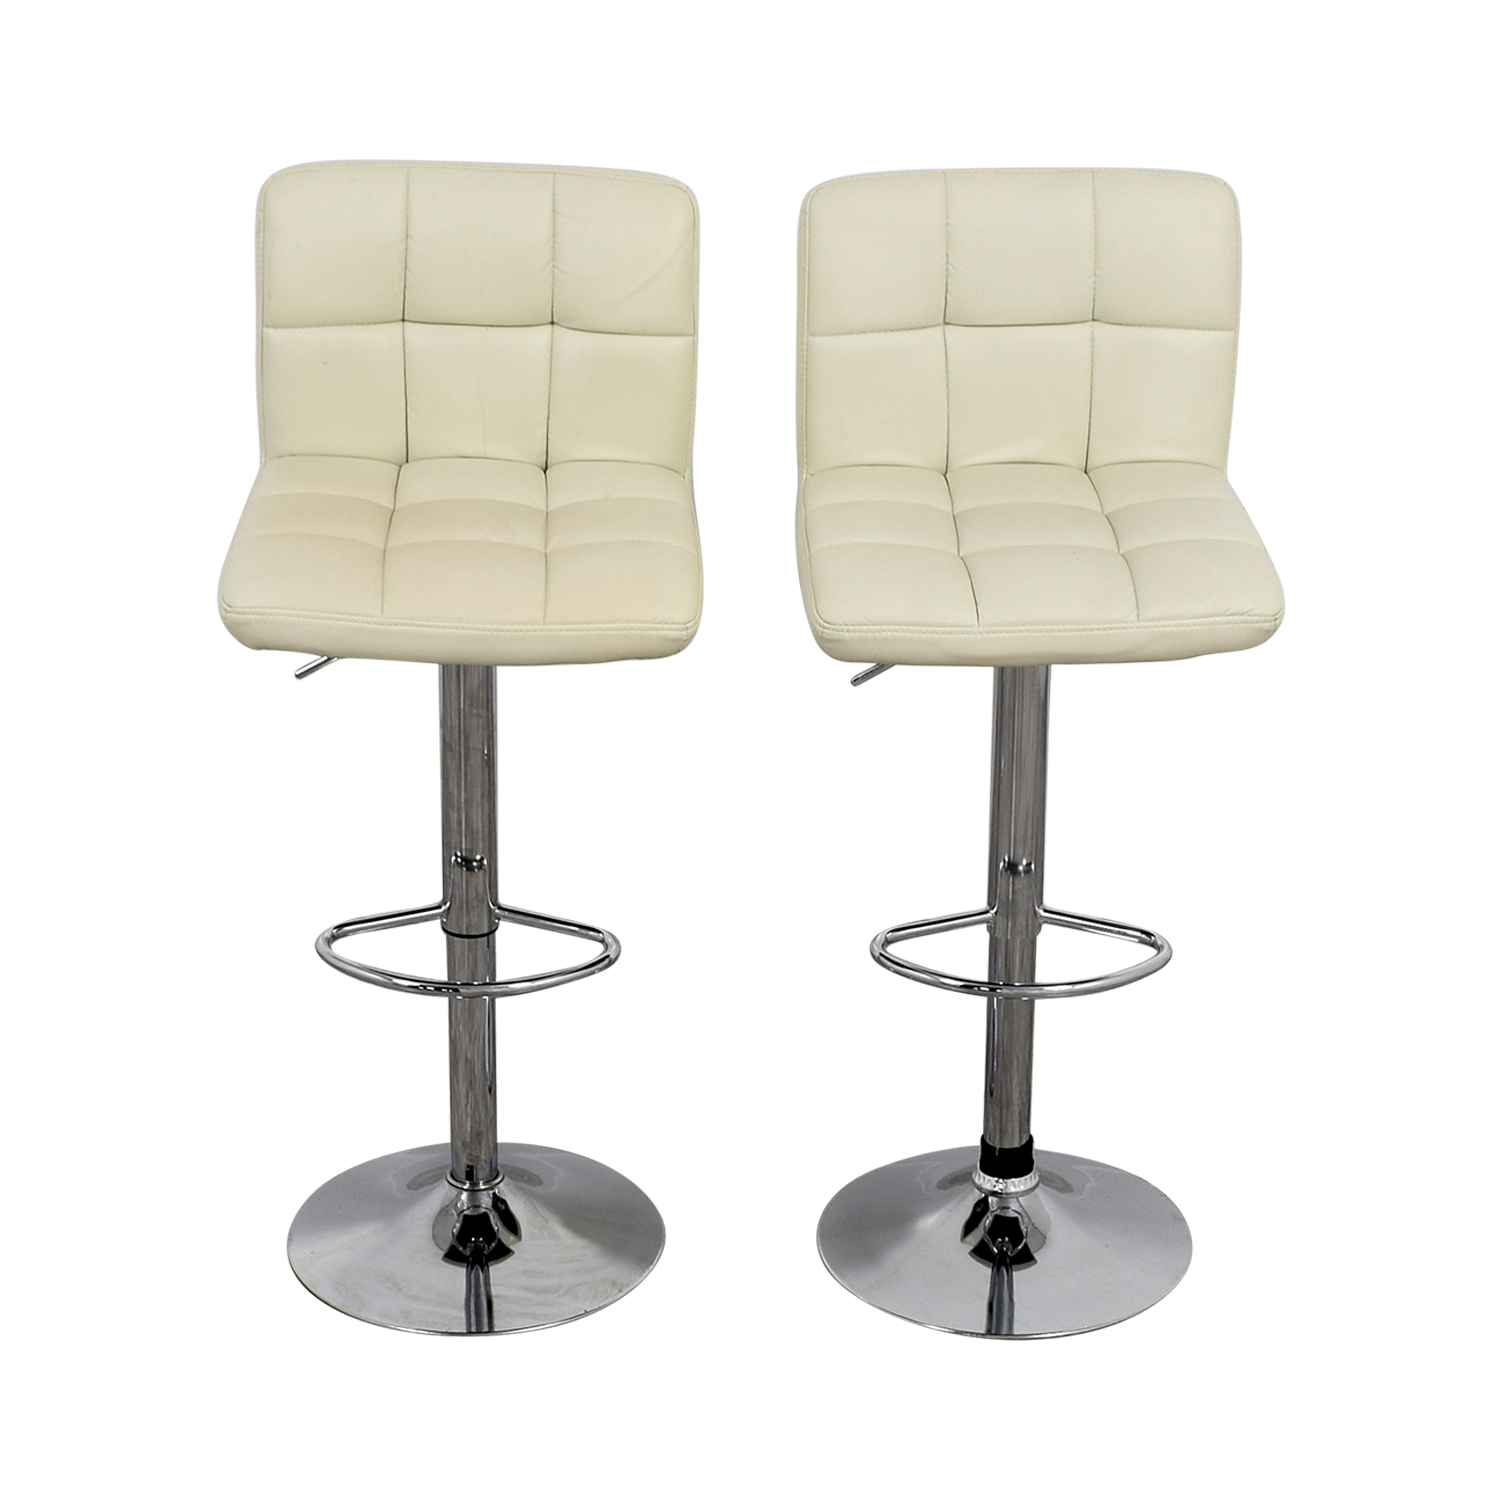 Creme and Chrome Tufted Bar Stools Chairs